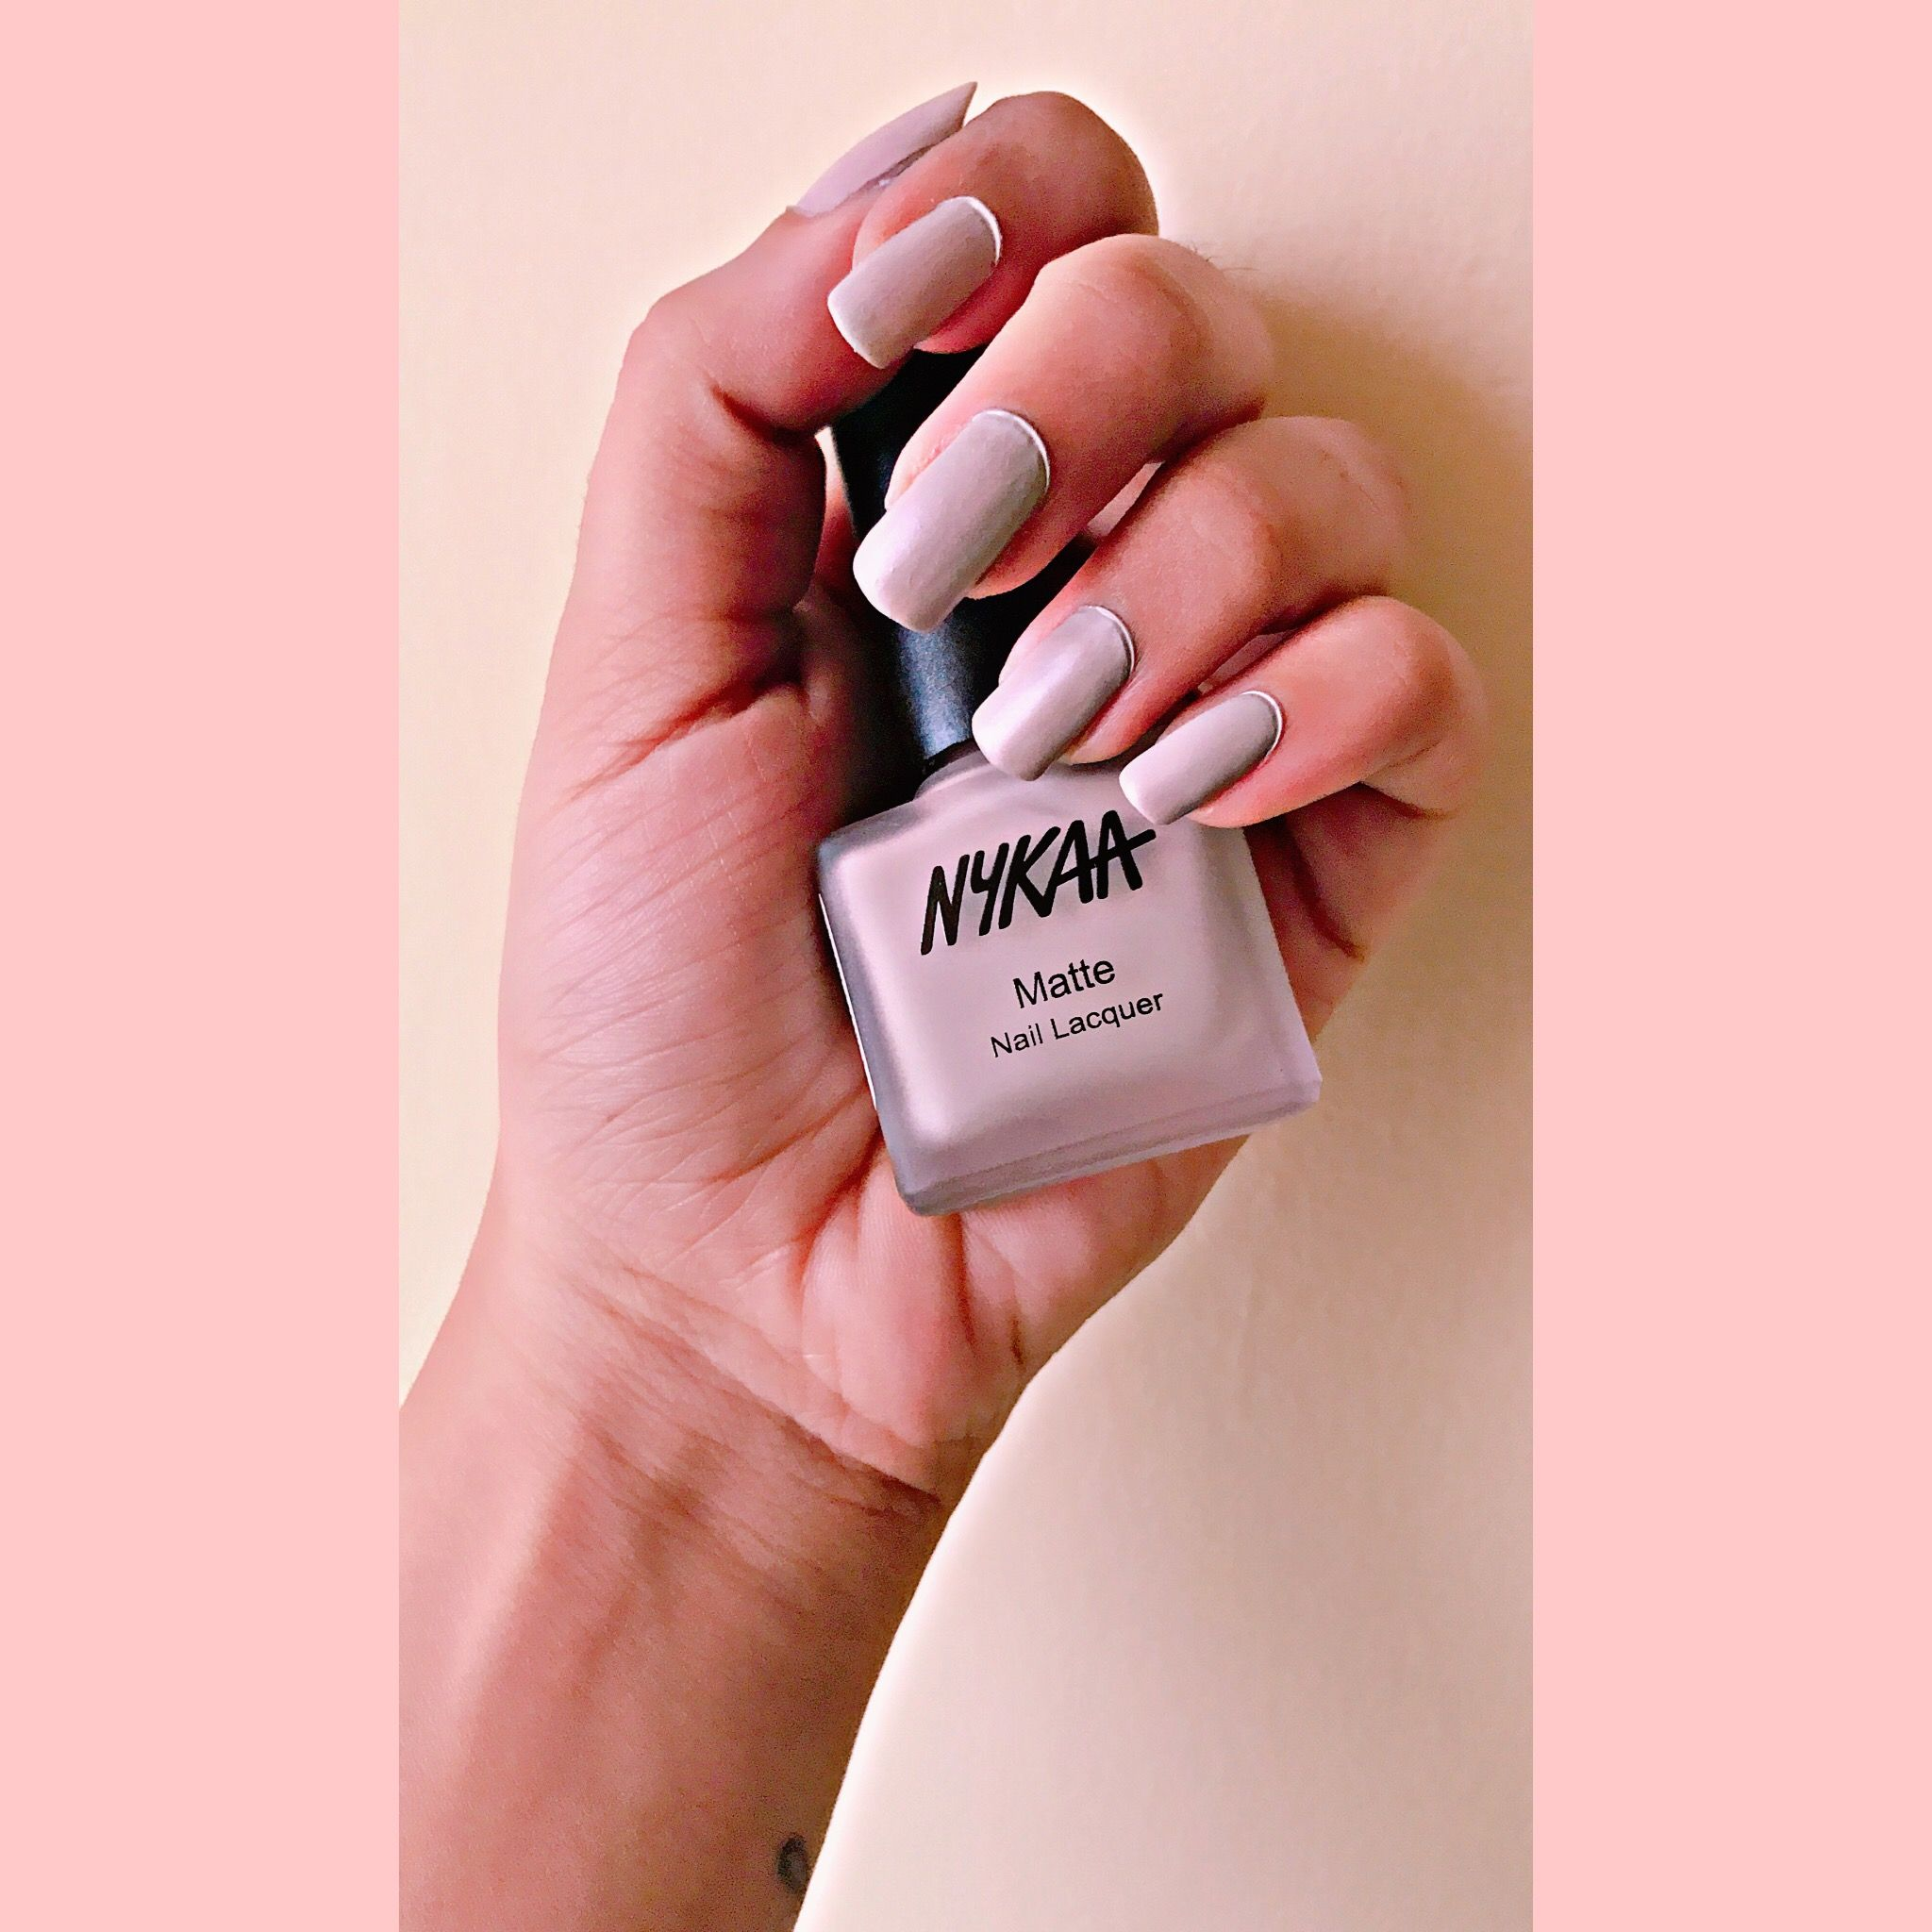 On My Nails Nykaa Matte Nail Lacquer In The Shade S Mores Milkshake 29